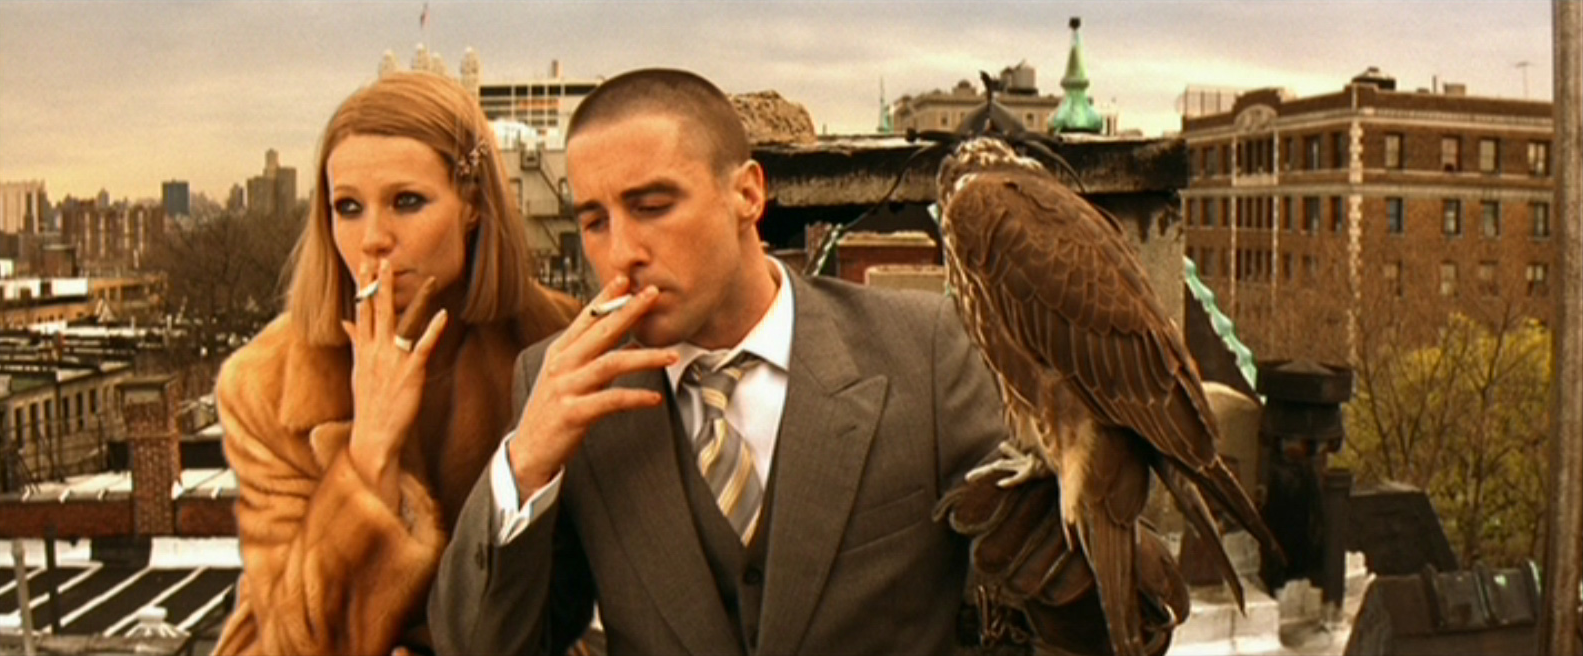 Gwyneth Paltrow and Luke Wilson in The Royal Tenenbaums ...